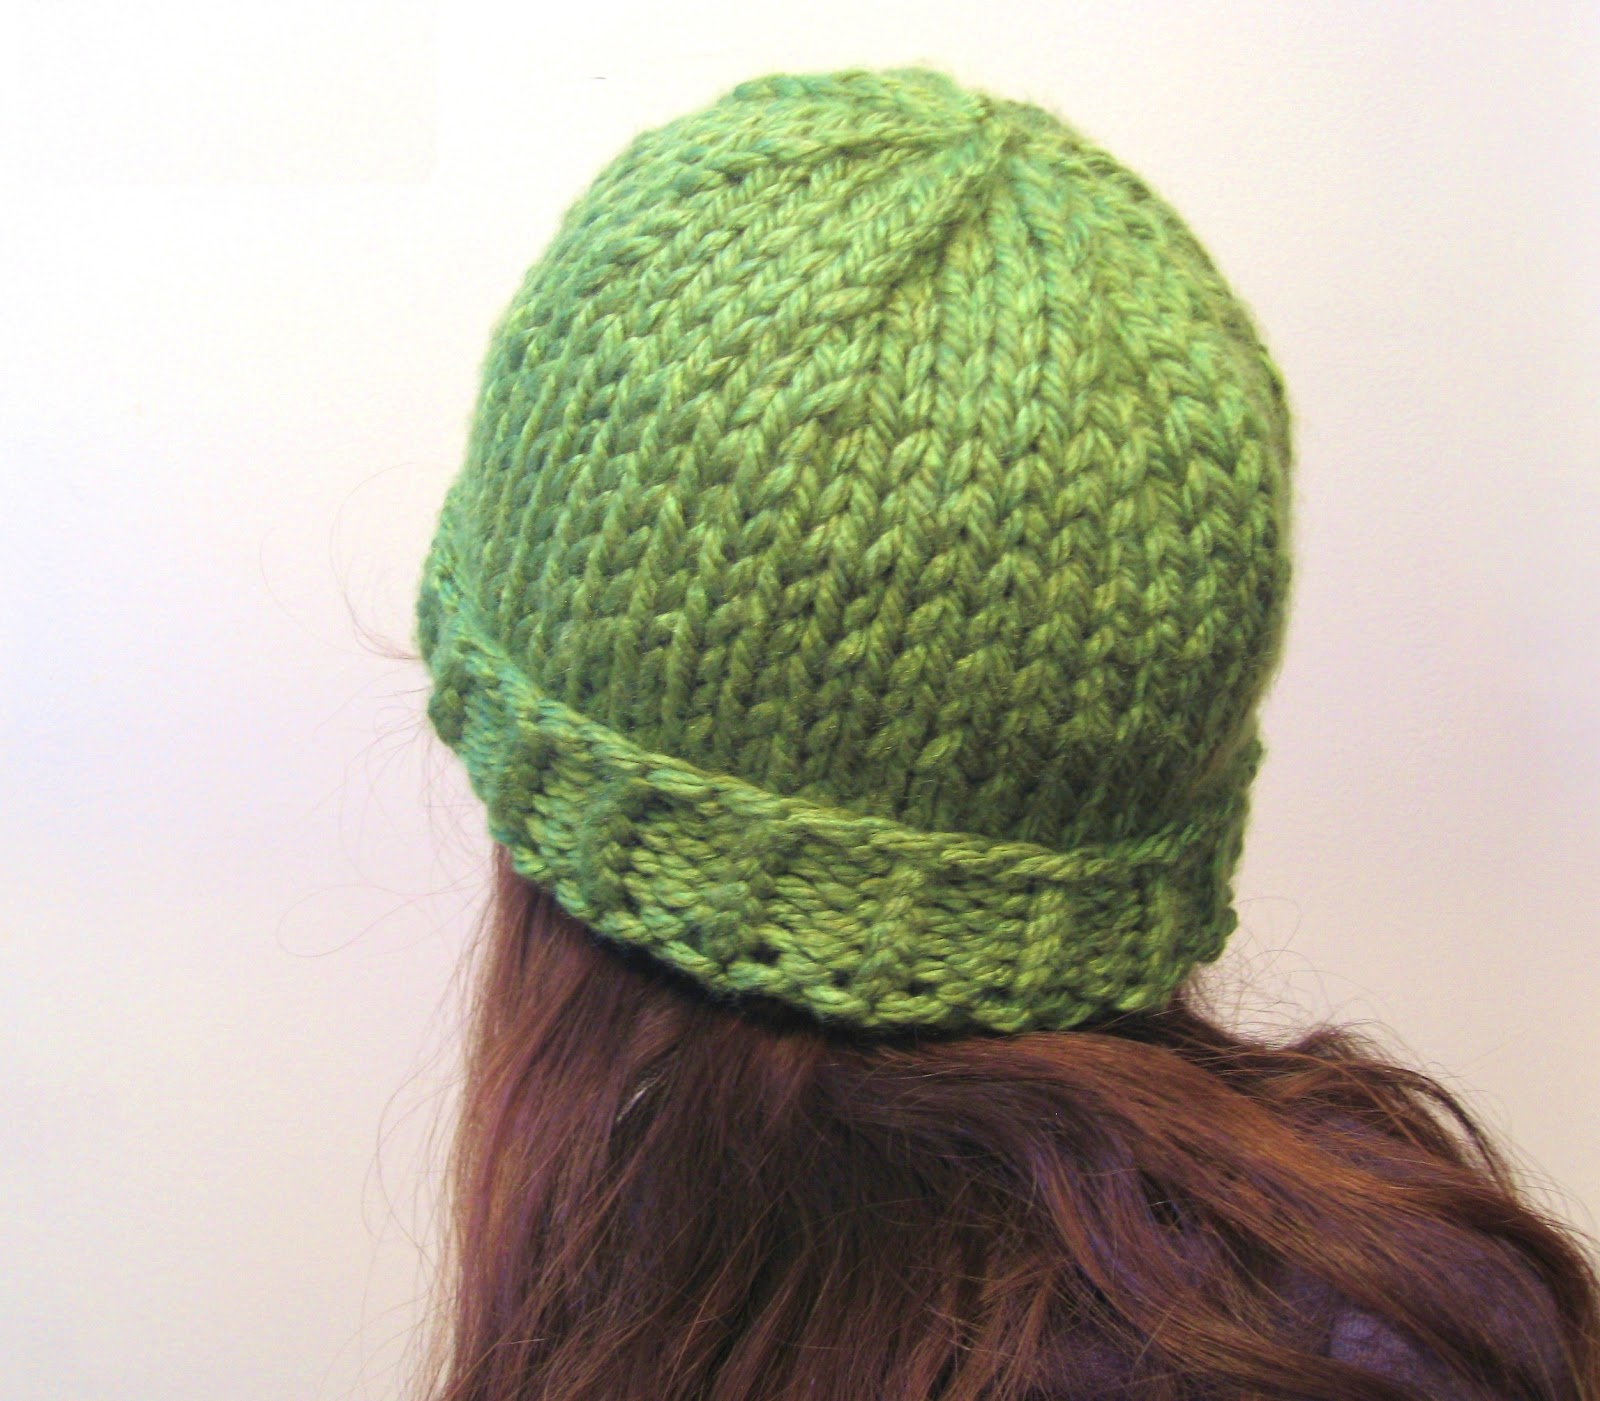 Easy Bootie Knitting Pattern : megan E sass handknits: Free Knitting Pattern: Easy Chunky Knit Beanie Hat